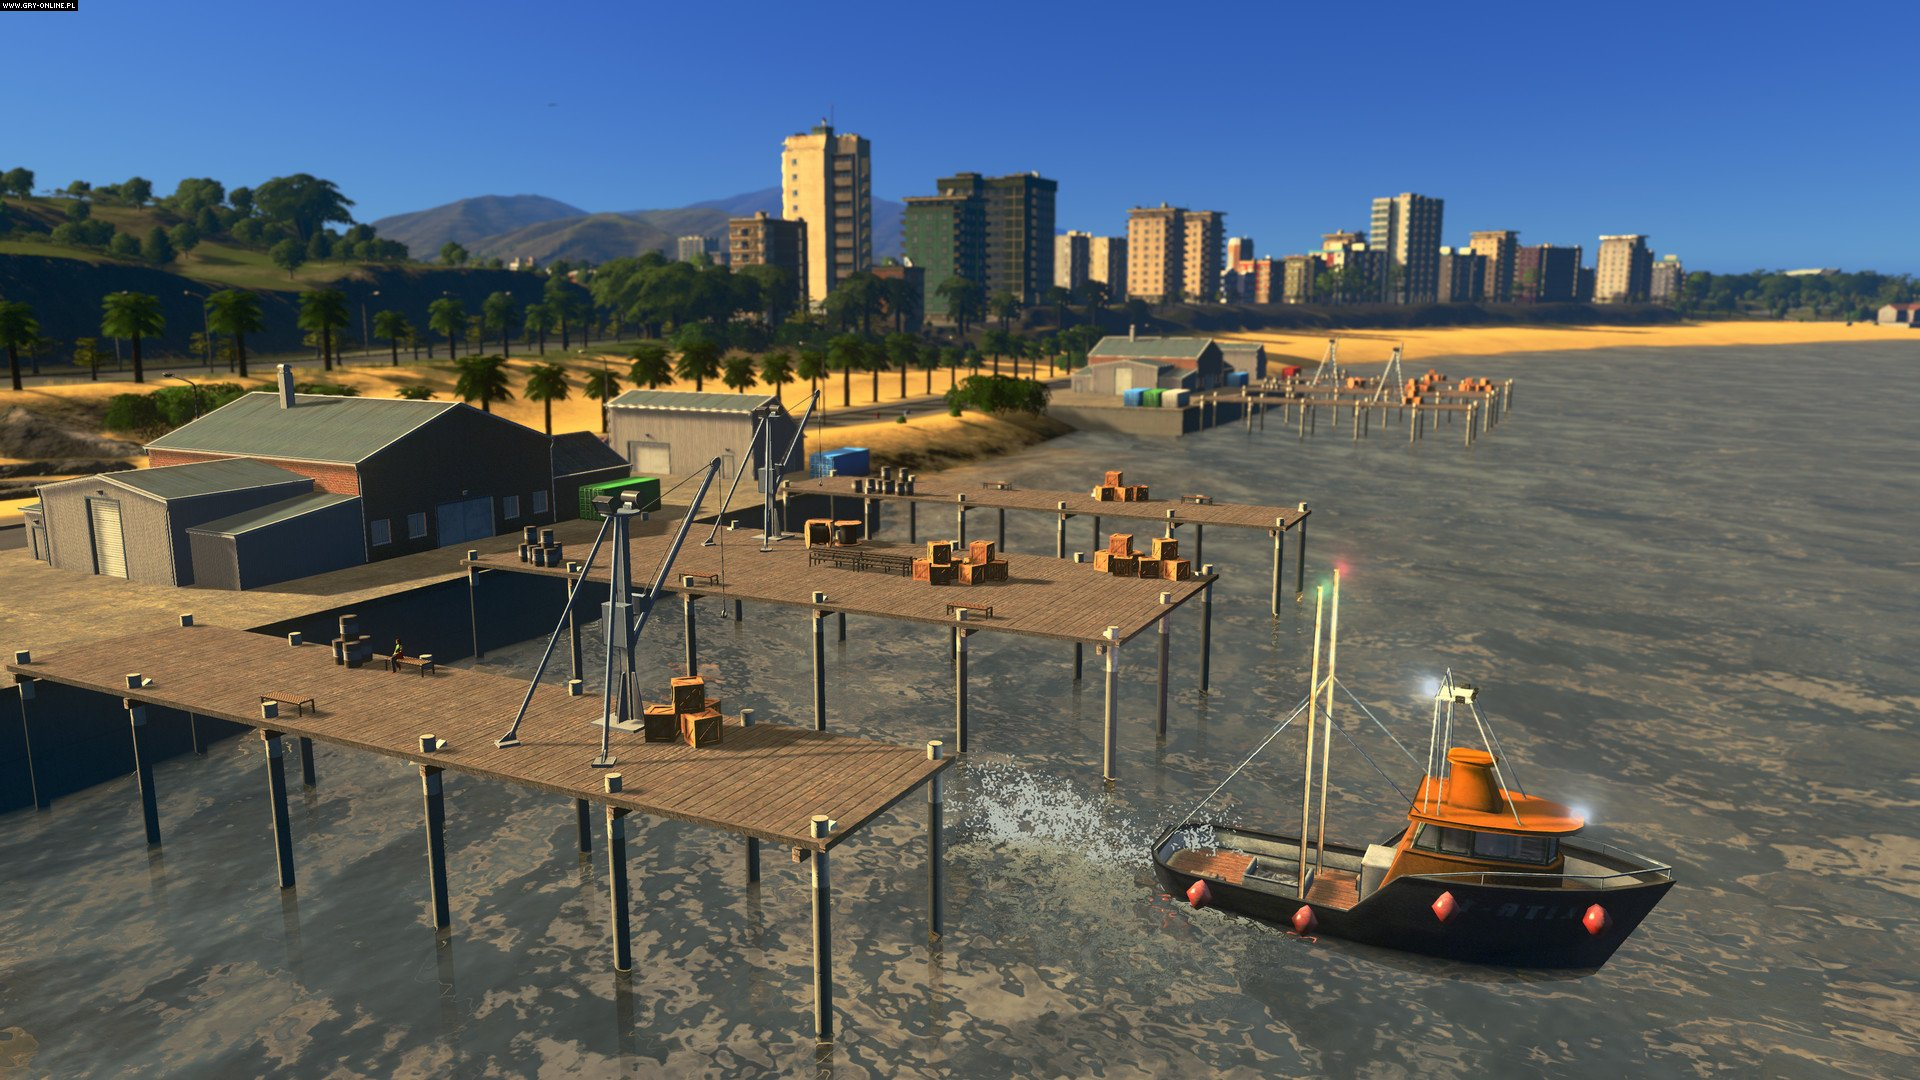 Cities: Skylines - Sunset Harbor PC, PS4, XONE Games Image 4/6, Colossal Order, Paradox Interactive